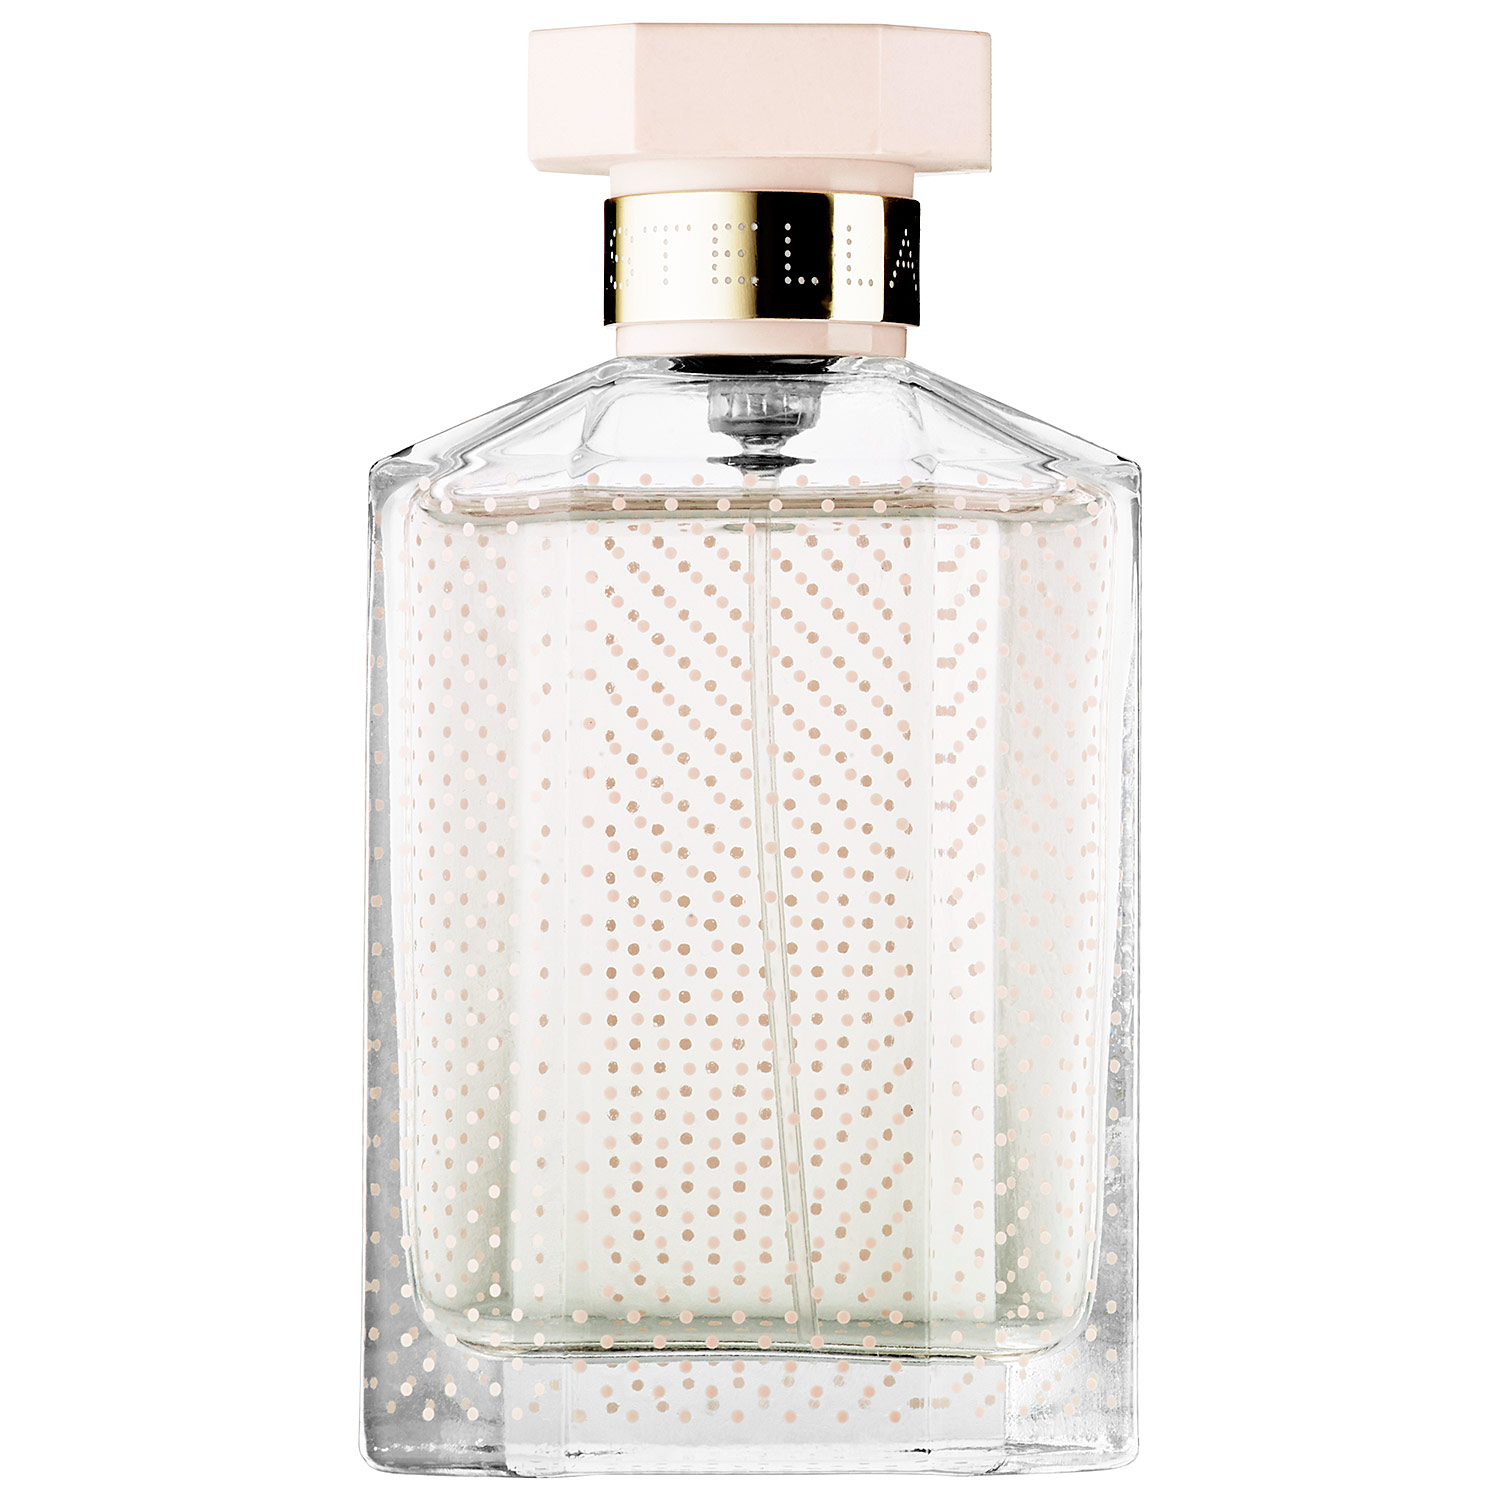 In modern perfumery, the term eau de toilette is generally used to describe the concentration of fragrance, with eau de toilette being weaker than Eau de Parfum and stronger than Eau de Cologne. Types. Perfume formulas Eau de toilette is a weaker concentration of fragrance than pure perfume.